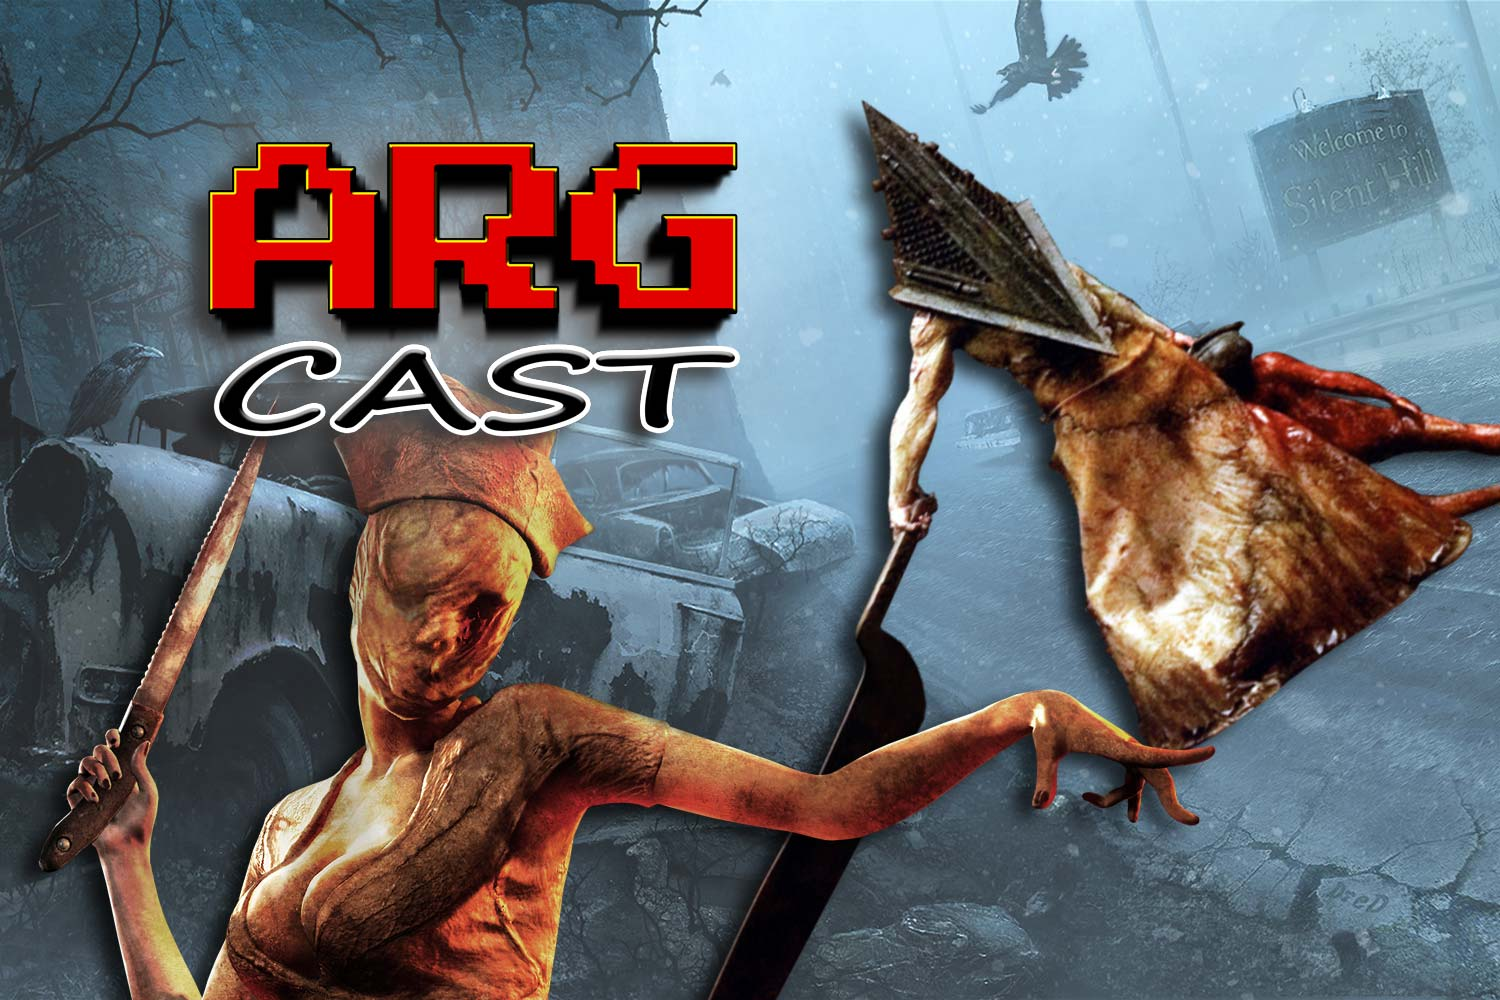 ARGcast #134: Getting Spooky in Silent Hill with Bill Gardner